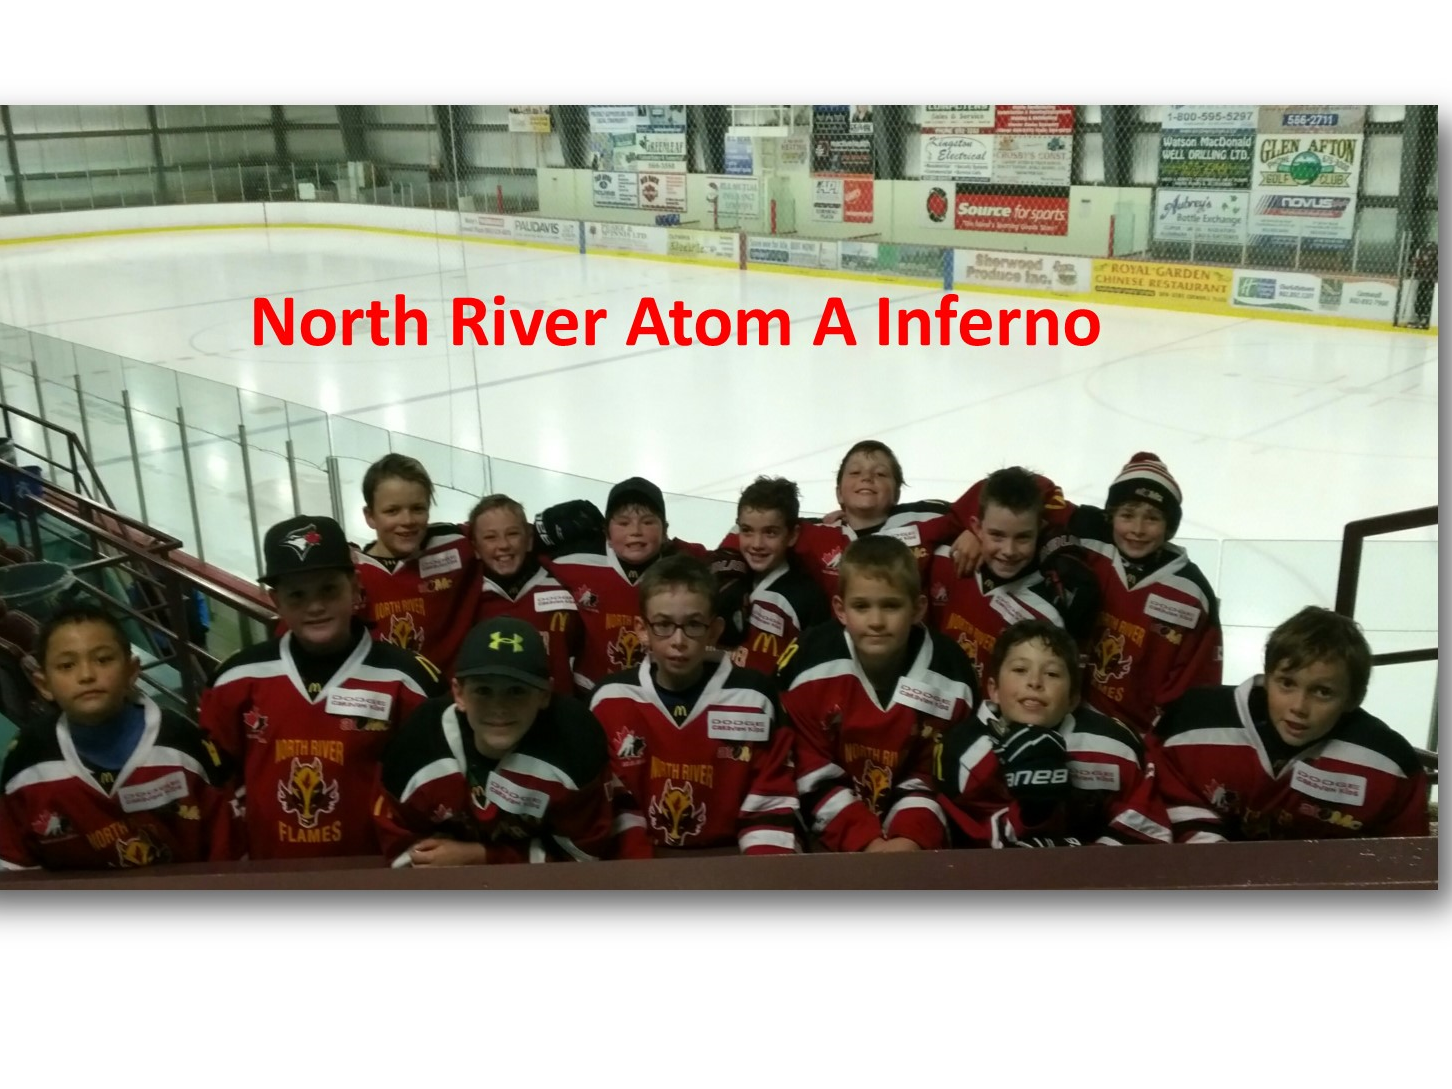 North River Atom A Inferno